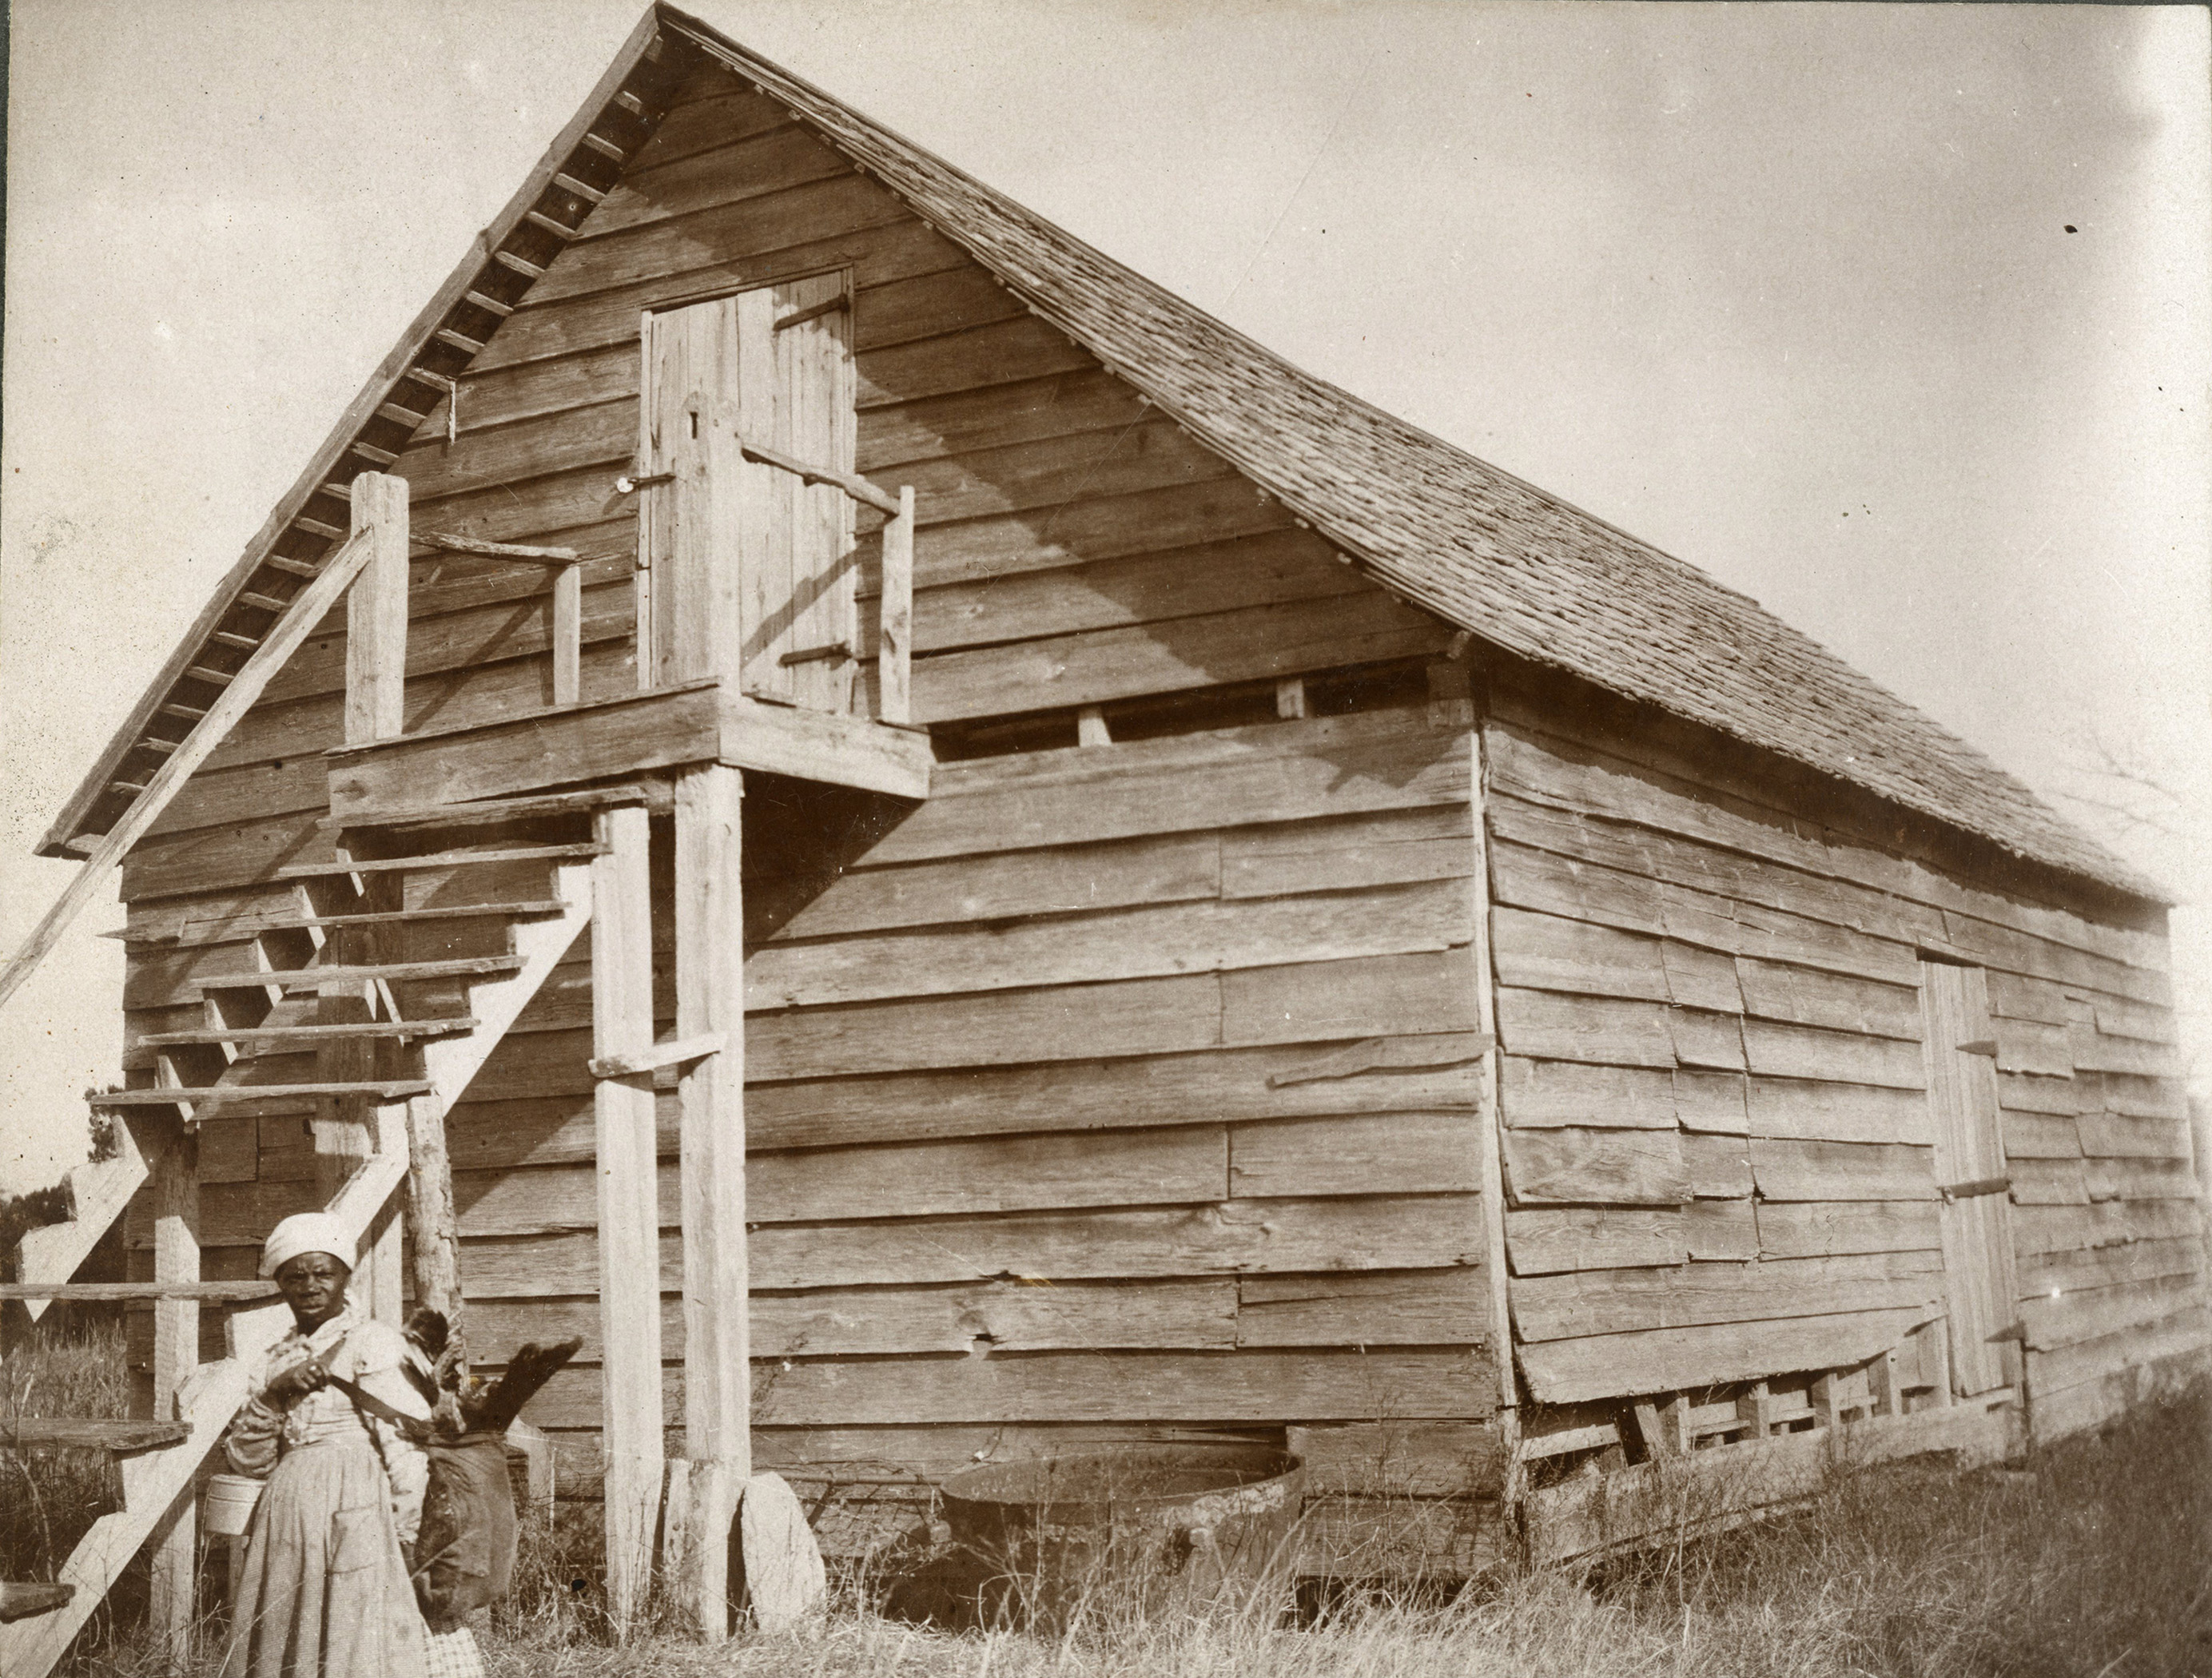 Photograph of a Woman Gesturing in Front of a Rice Granary, Wantoot plantation